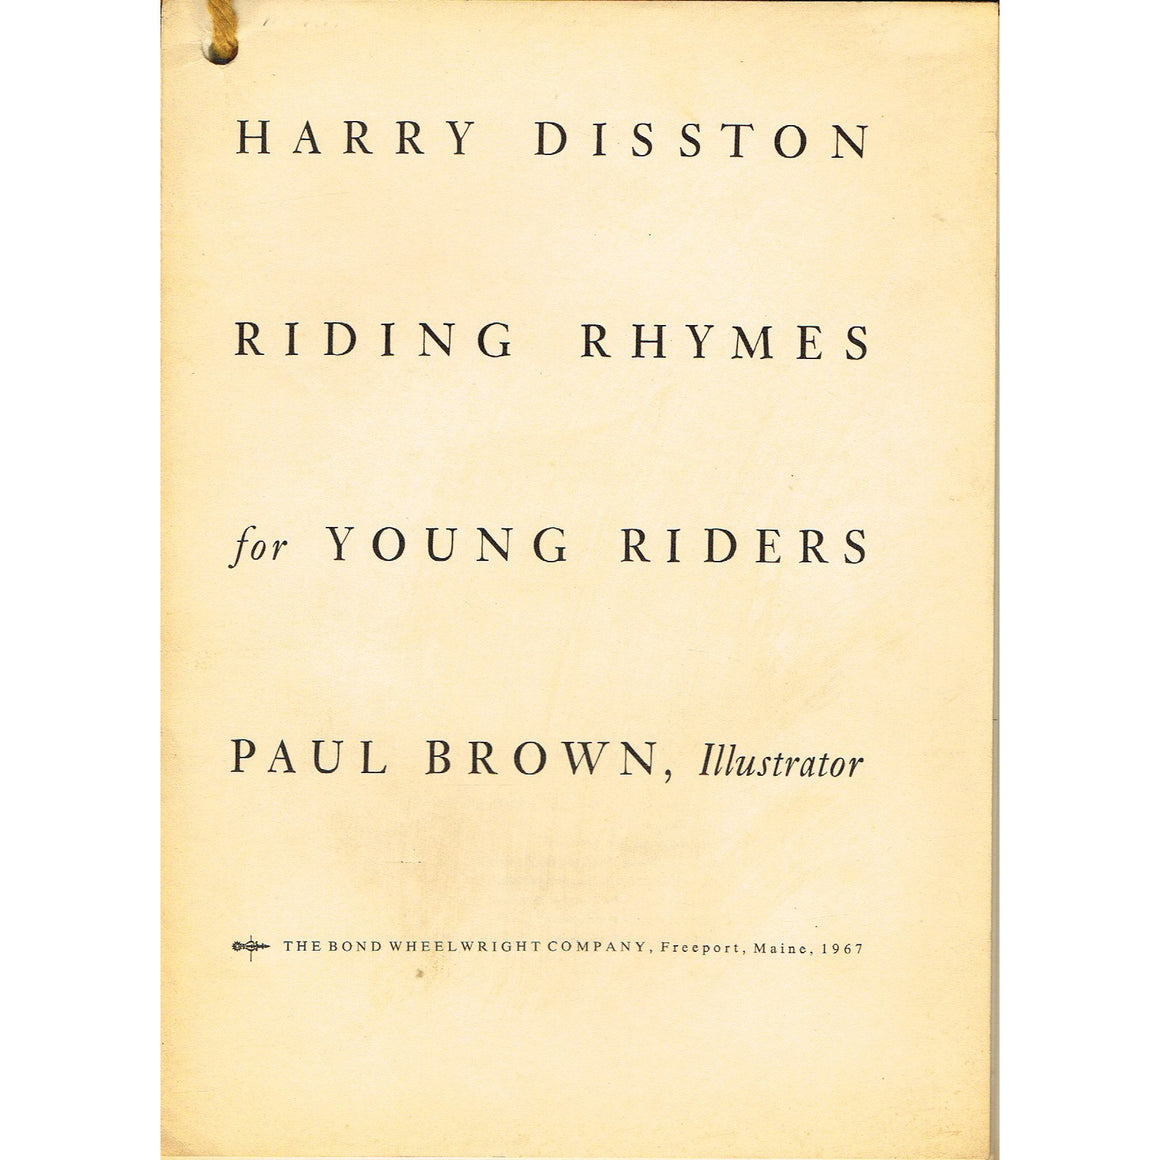 Riding Rhymes for Young Riders